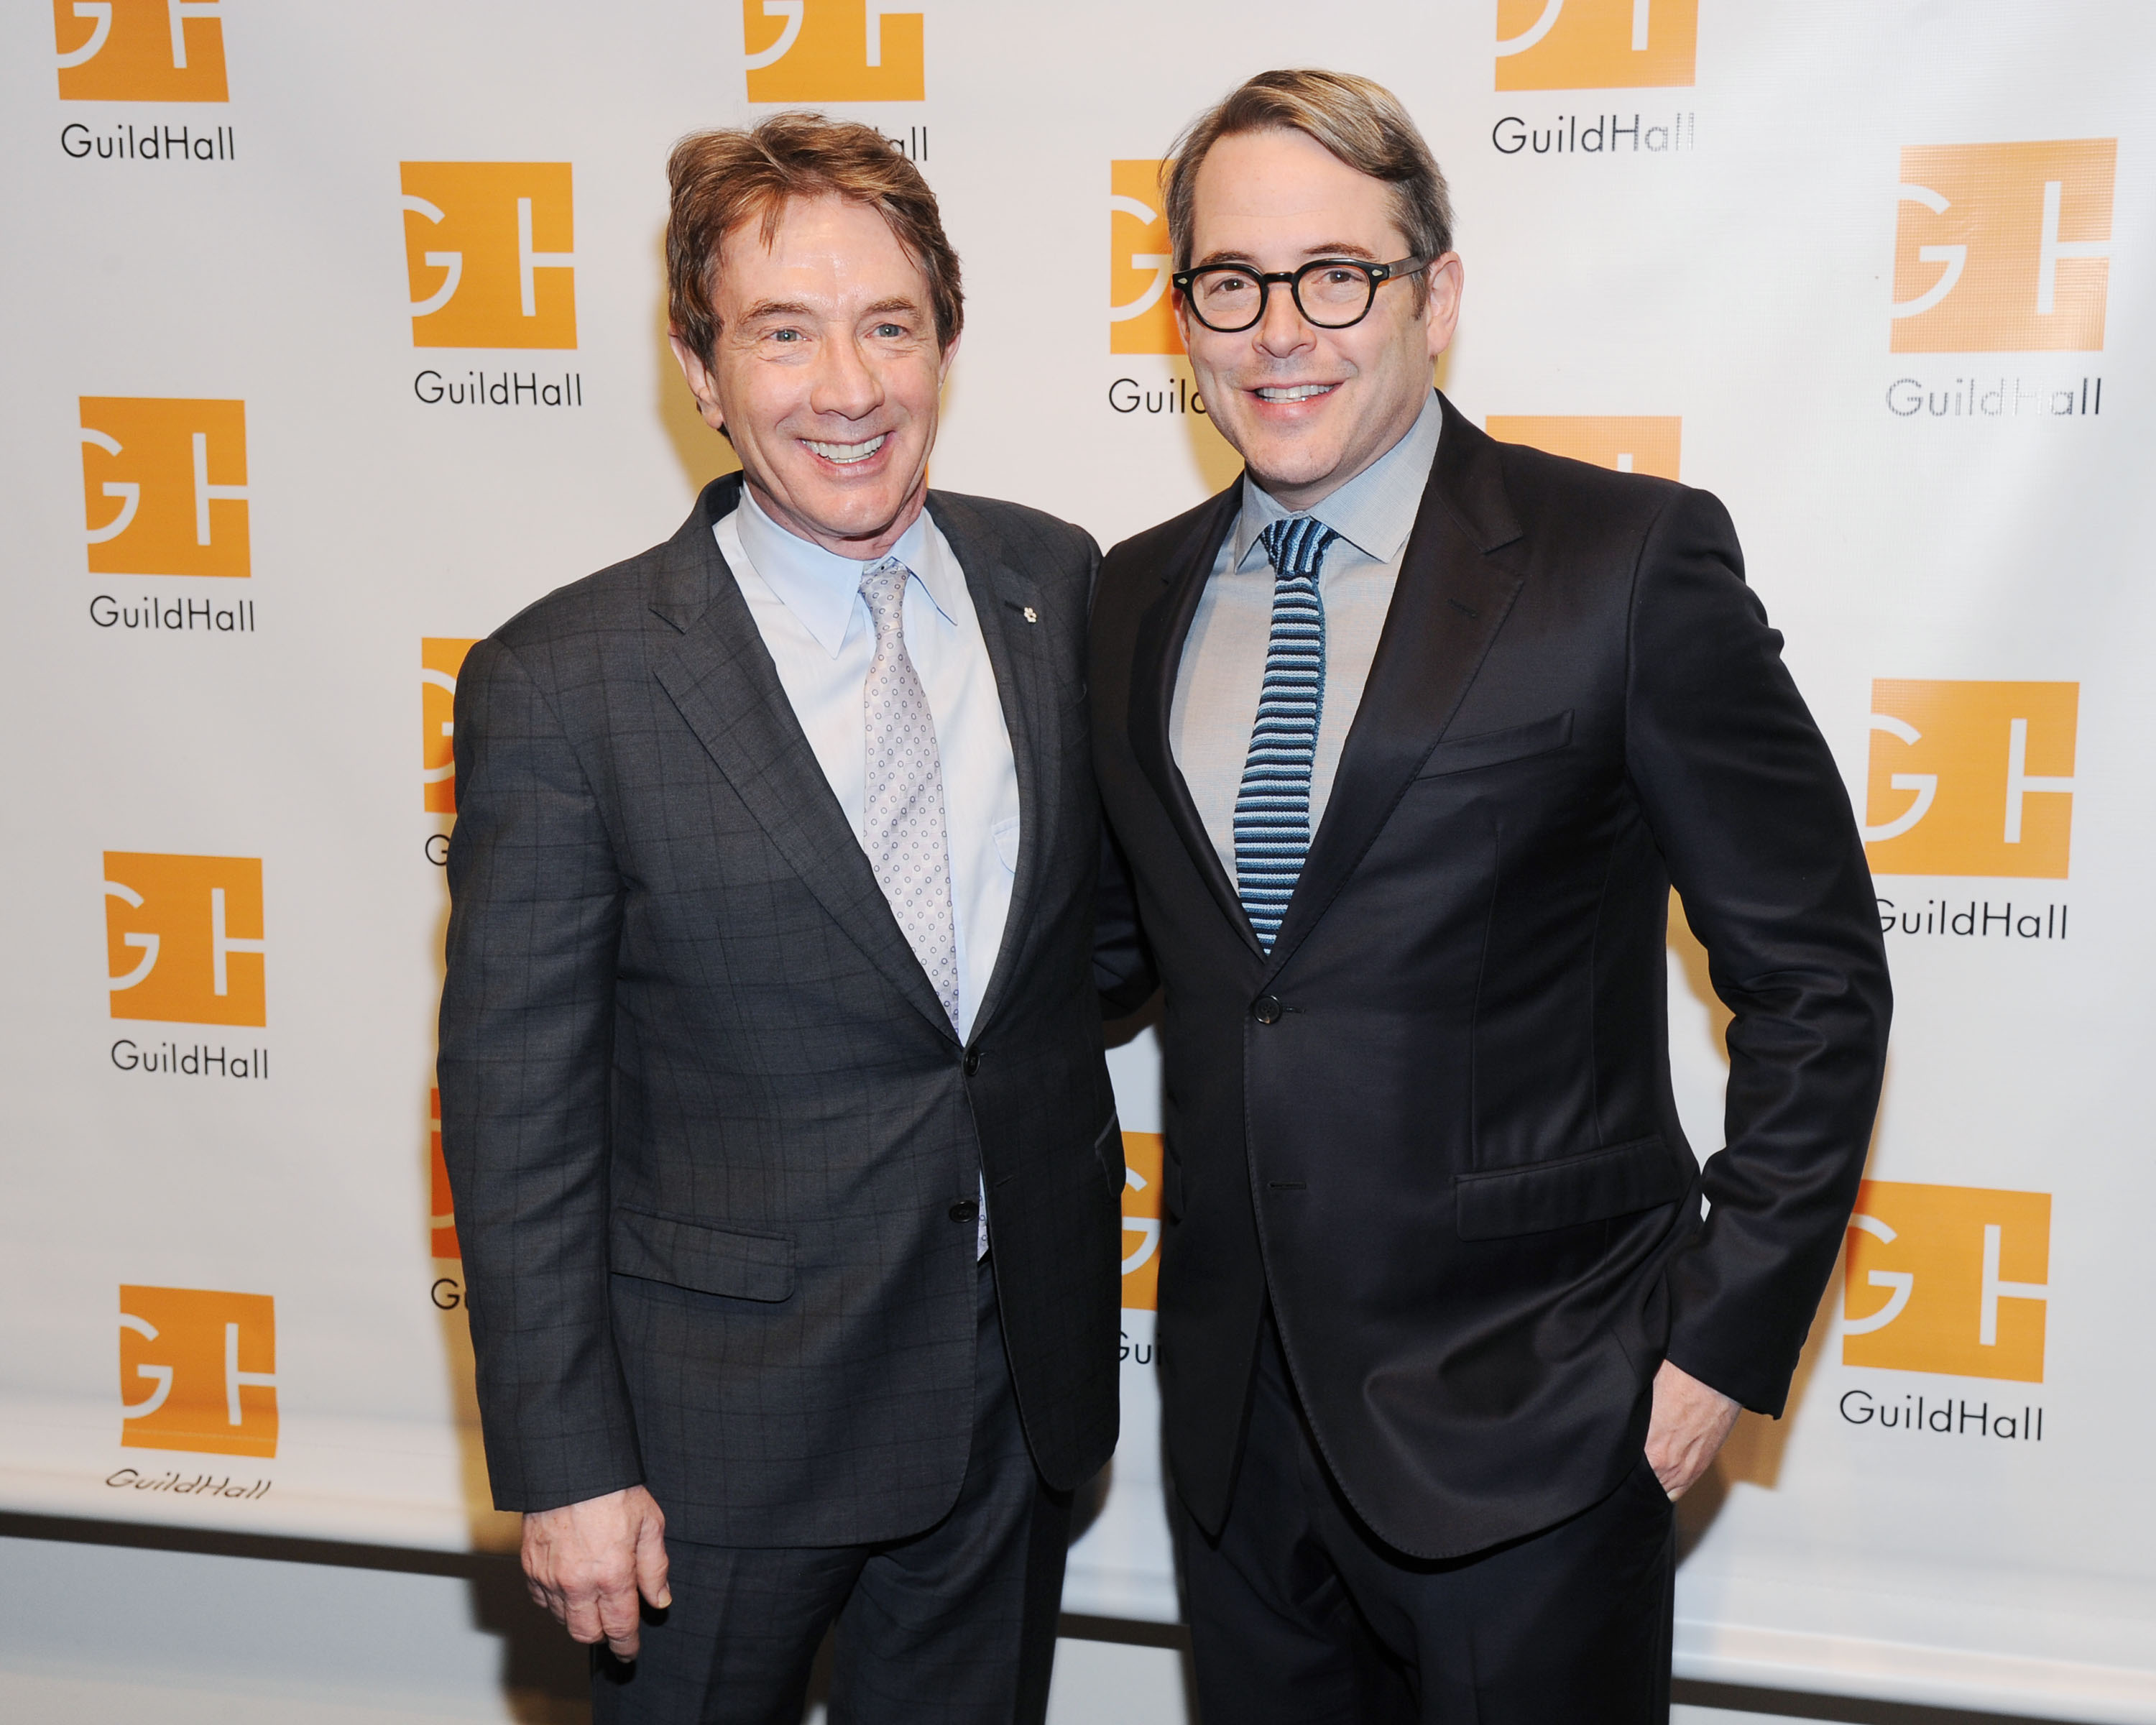 Martin Short and Matthew Broderick at the event (Photo: Patrick McMullan).